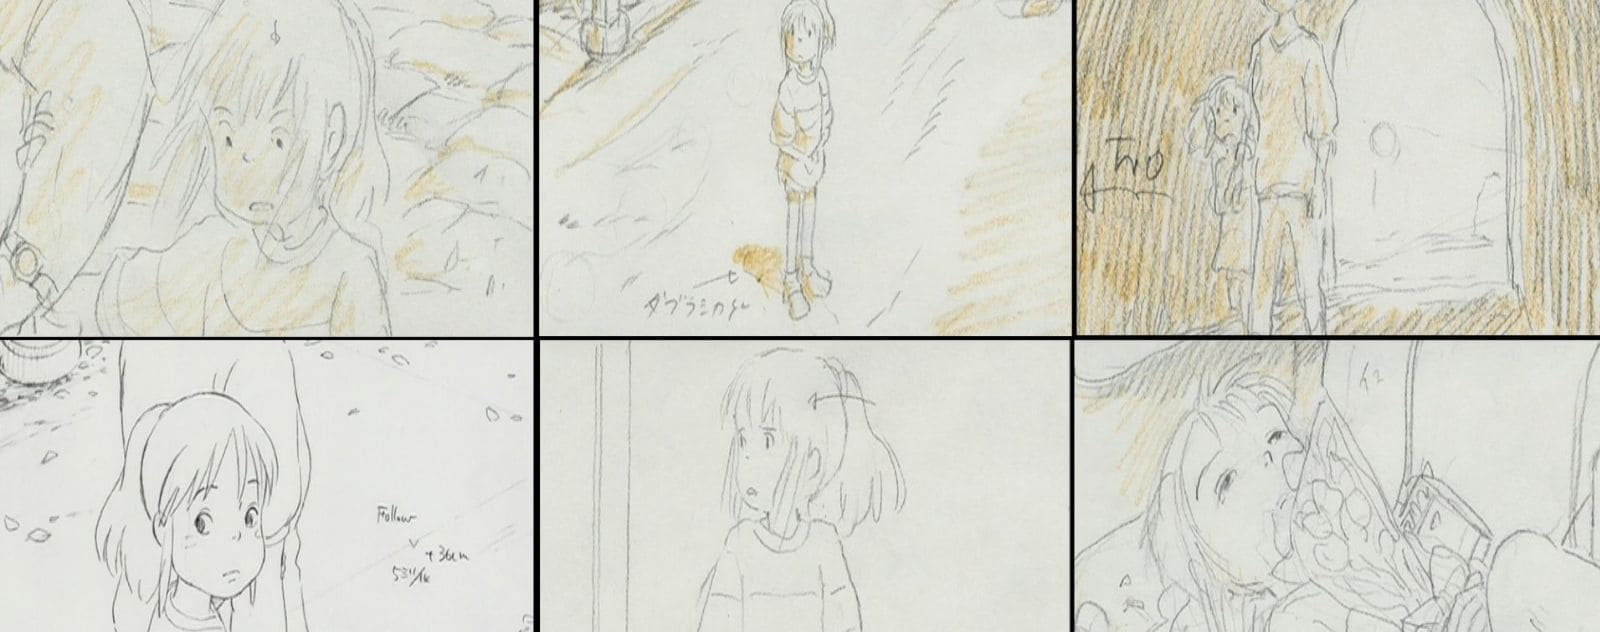 story board spirited away film d'animation japonais